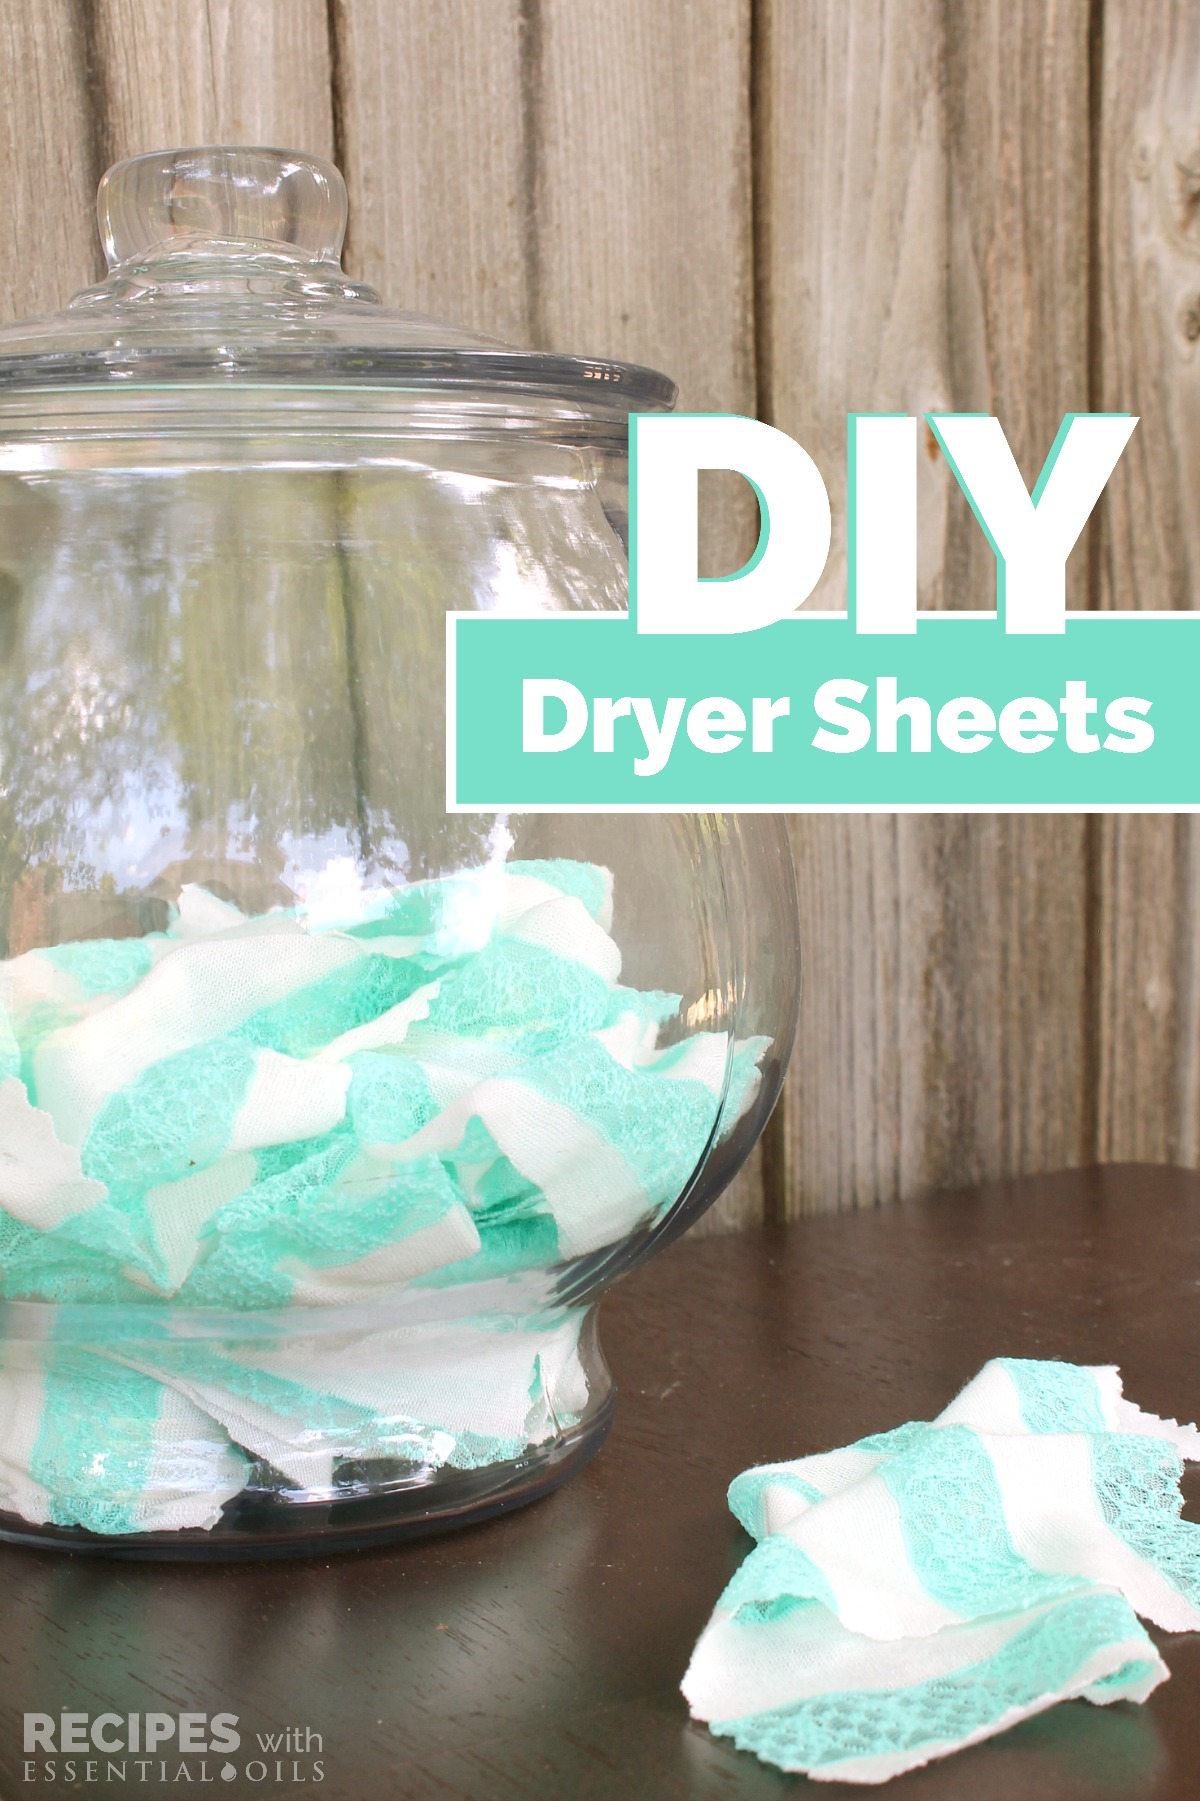 Homemade Dryer Sheets Recipe from RecipeswithEssentialOils.com